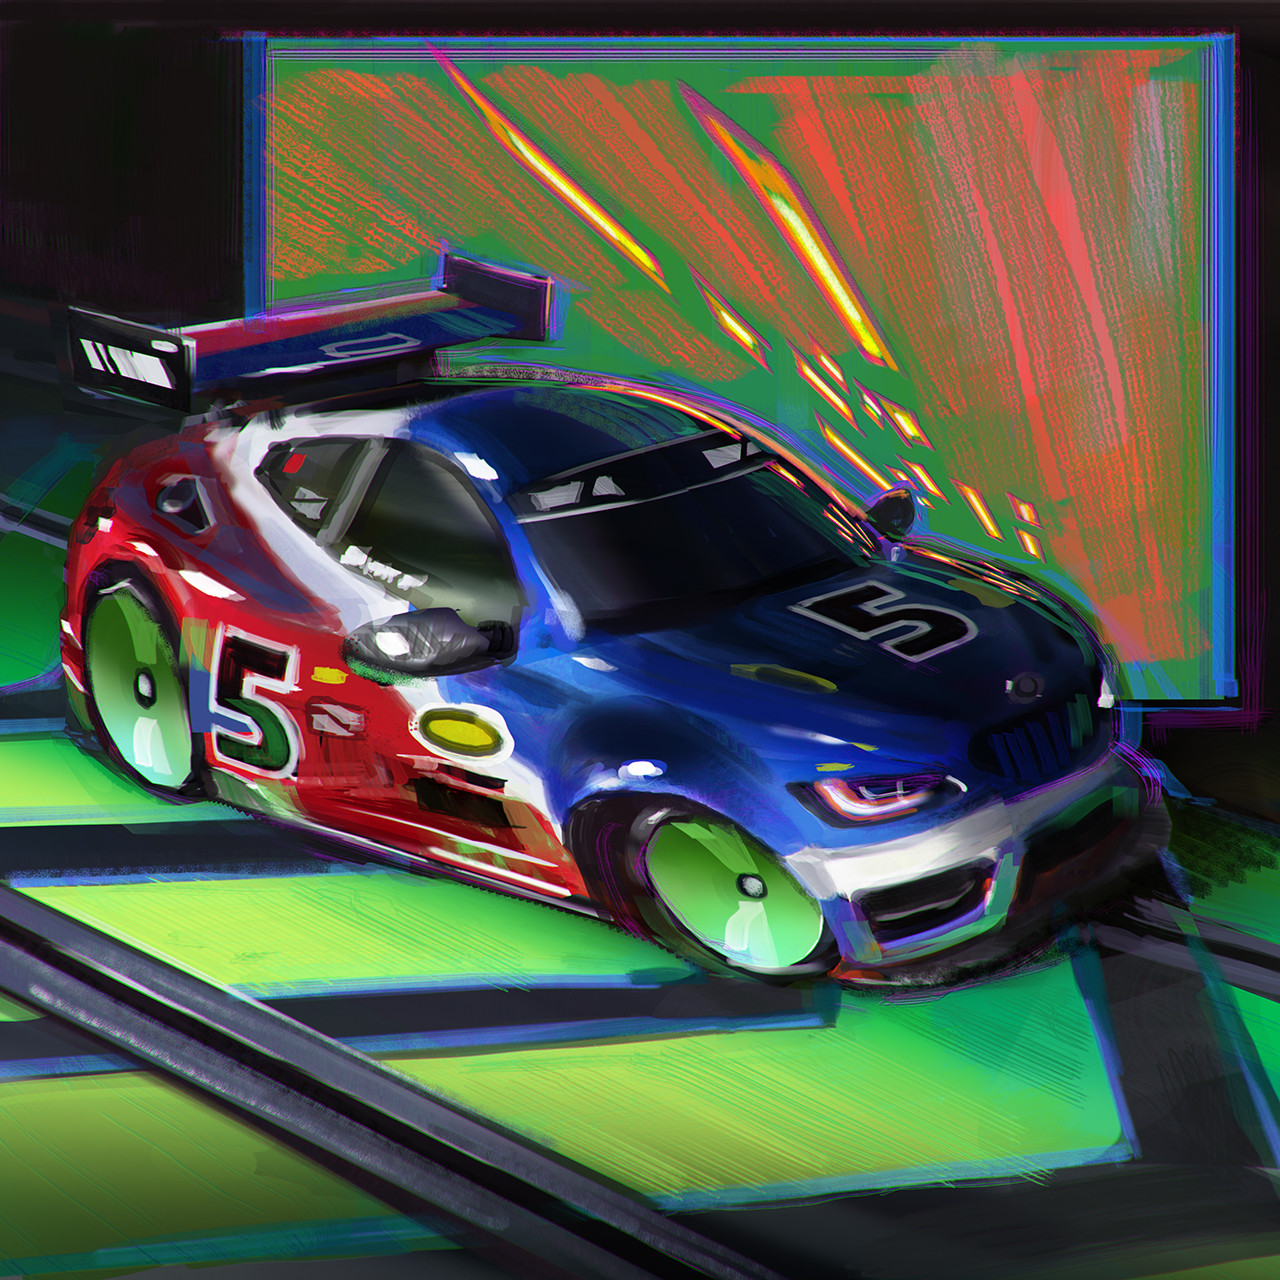 Toy Slot Car VR game